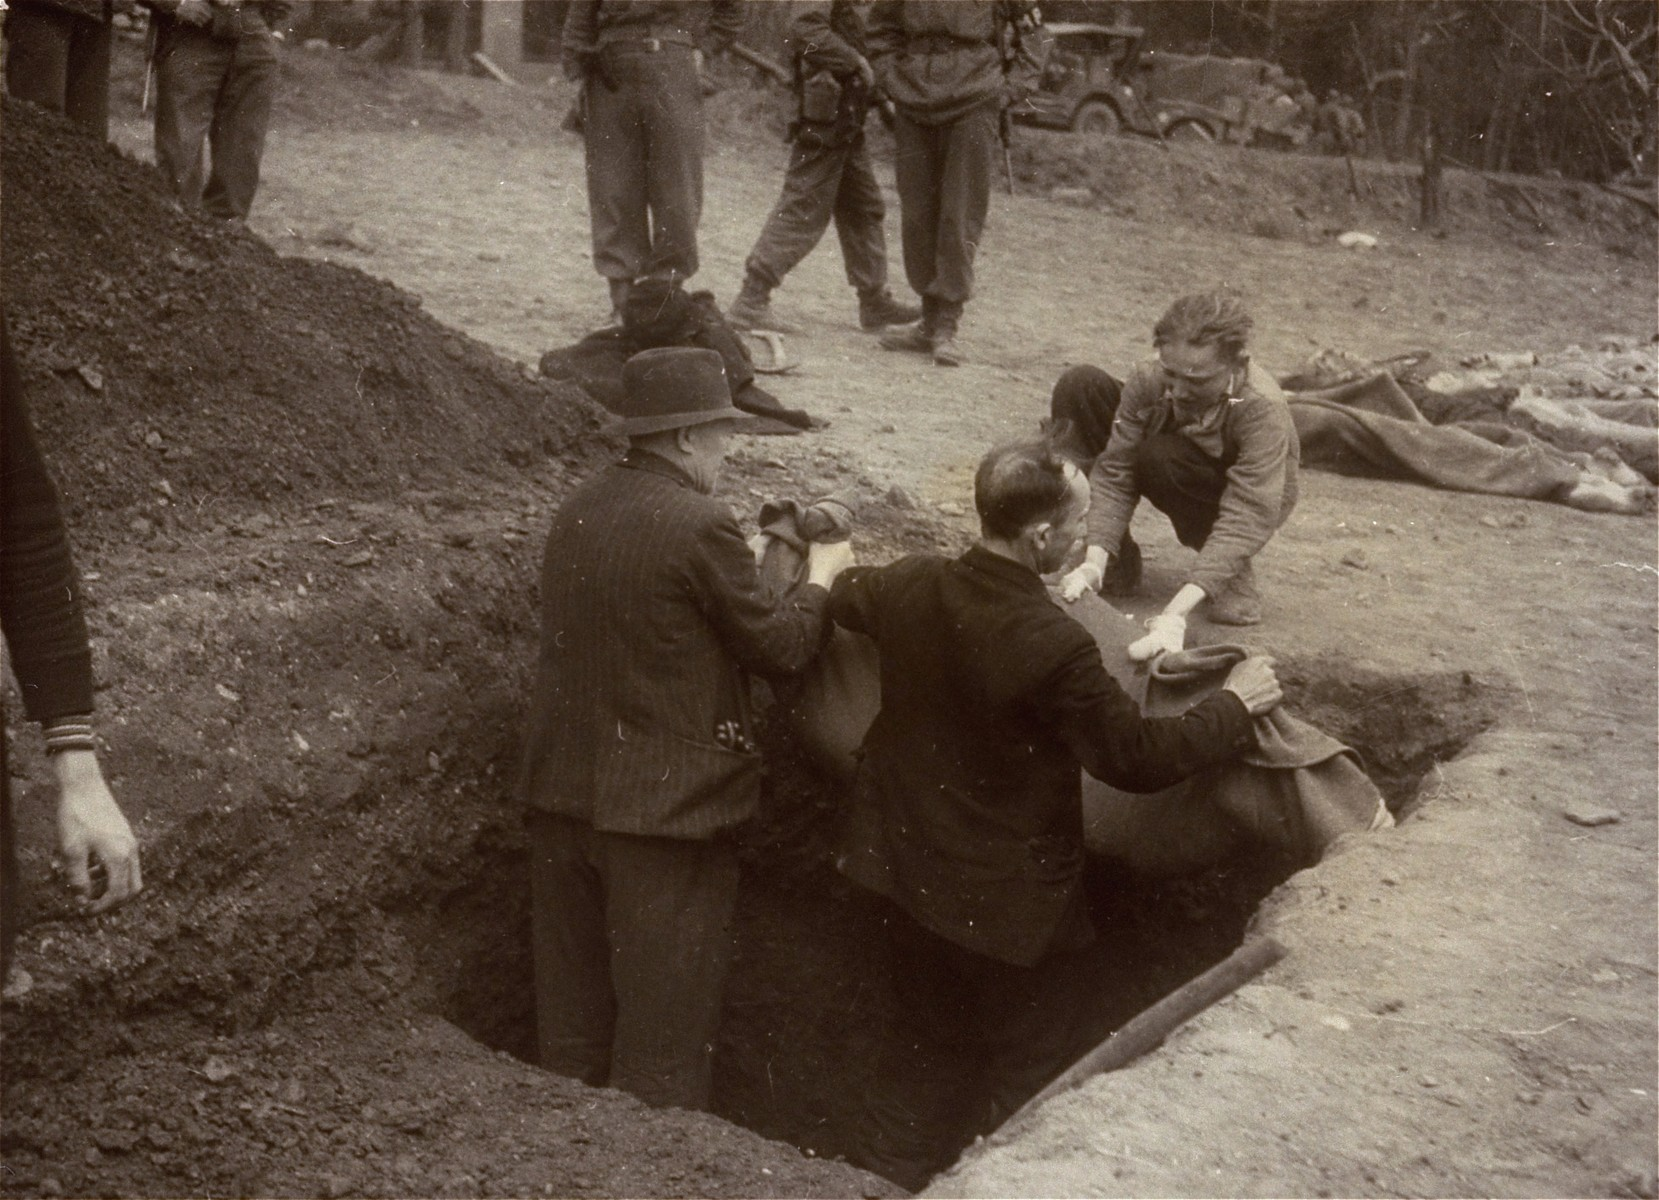 A Polish man, Walter Kallaur and his son, Michael, bury the boy's grandmother, Elizabeth Kallaur who died in the Nordhausen concentration camp, as American soldiers look on.    Elizabeth's head had been severed shortly before liberation.  The Kallaur family was sent to Nordhausen as punishment for helping Jews in the Pinsk region.  These survivors would not allow the Germans to touch their dead, even after Colonel D.B. Hardin ordered the civilian population of the town of Nordhausen to bury the corpses of prisoners found in the Nordhausen concentration camp.